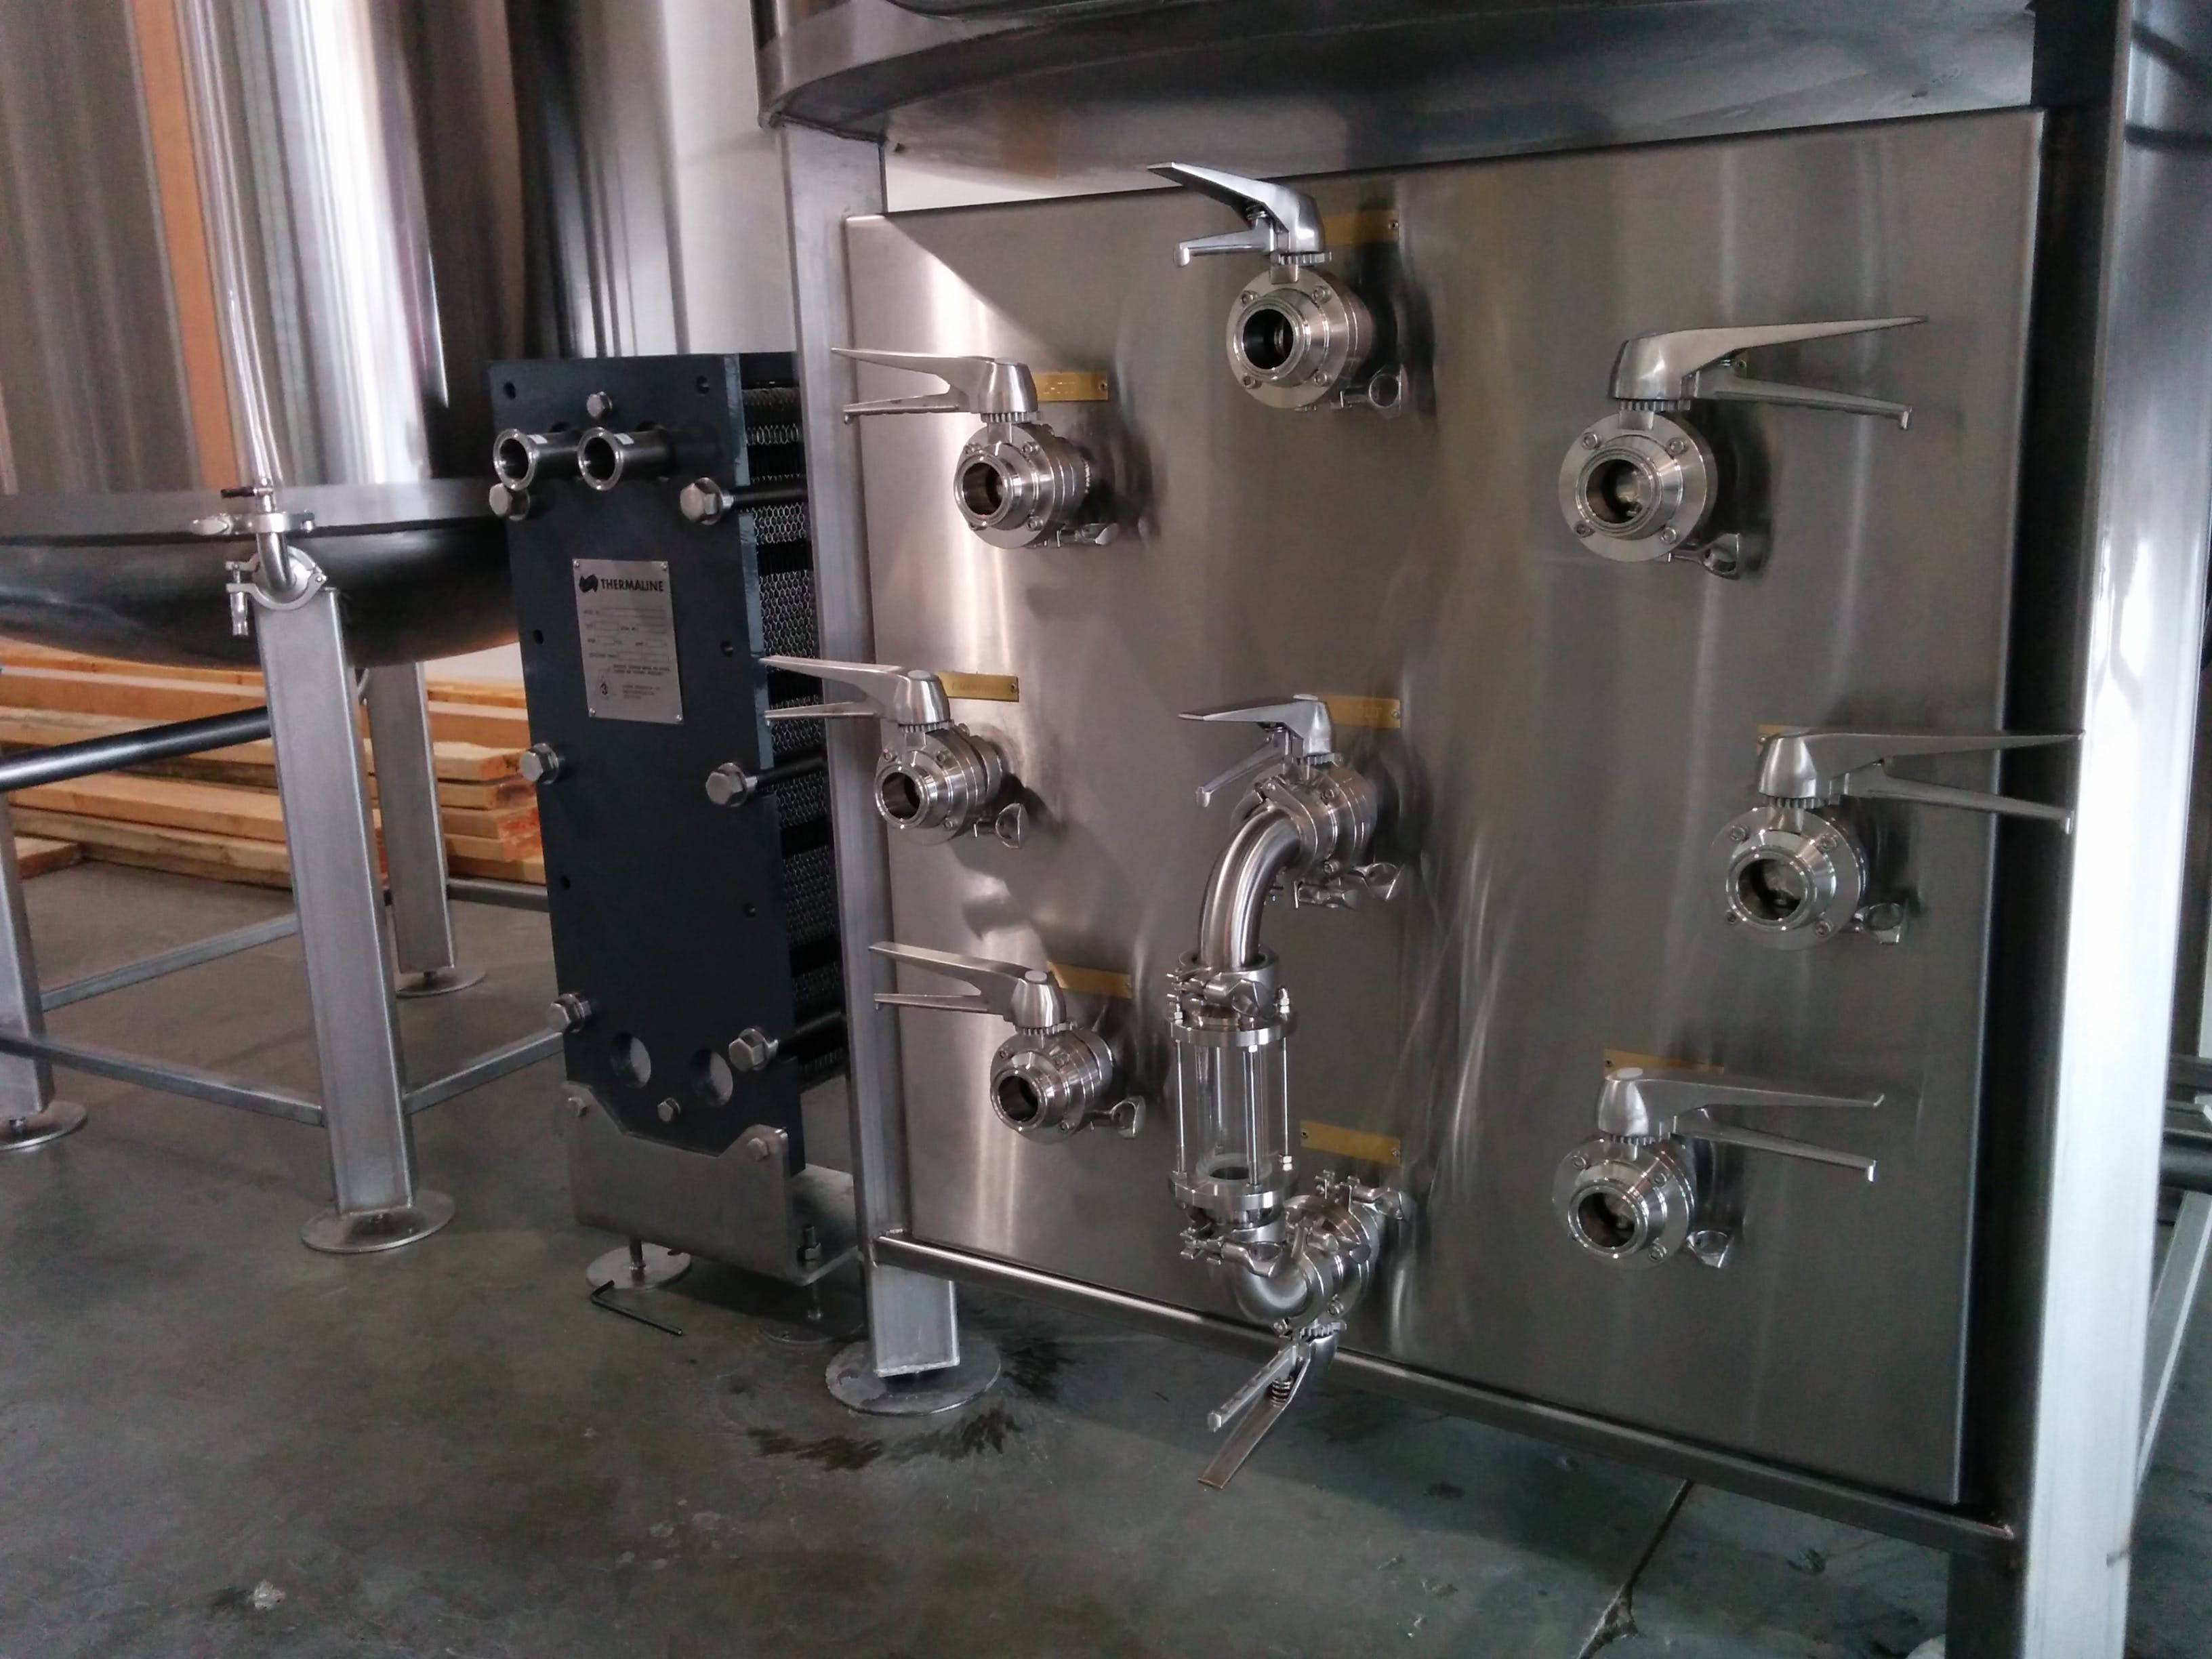 flow panel, manifold, process piping - 5-60 BBL Steam heated brewhouse - sold by Bridgetown Brew Systems llc.